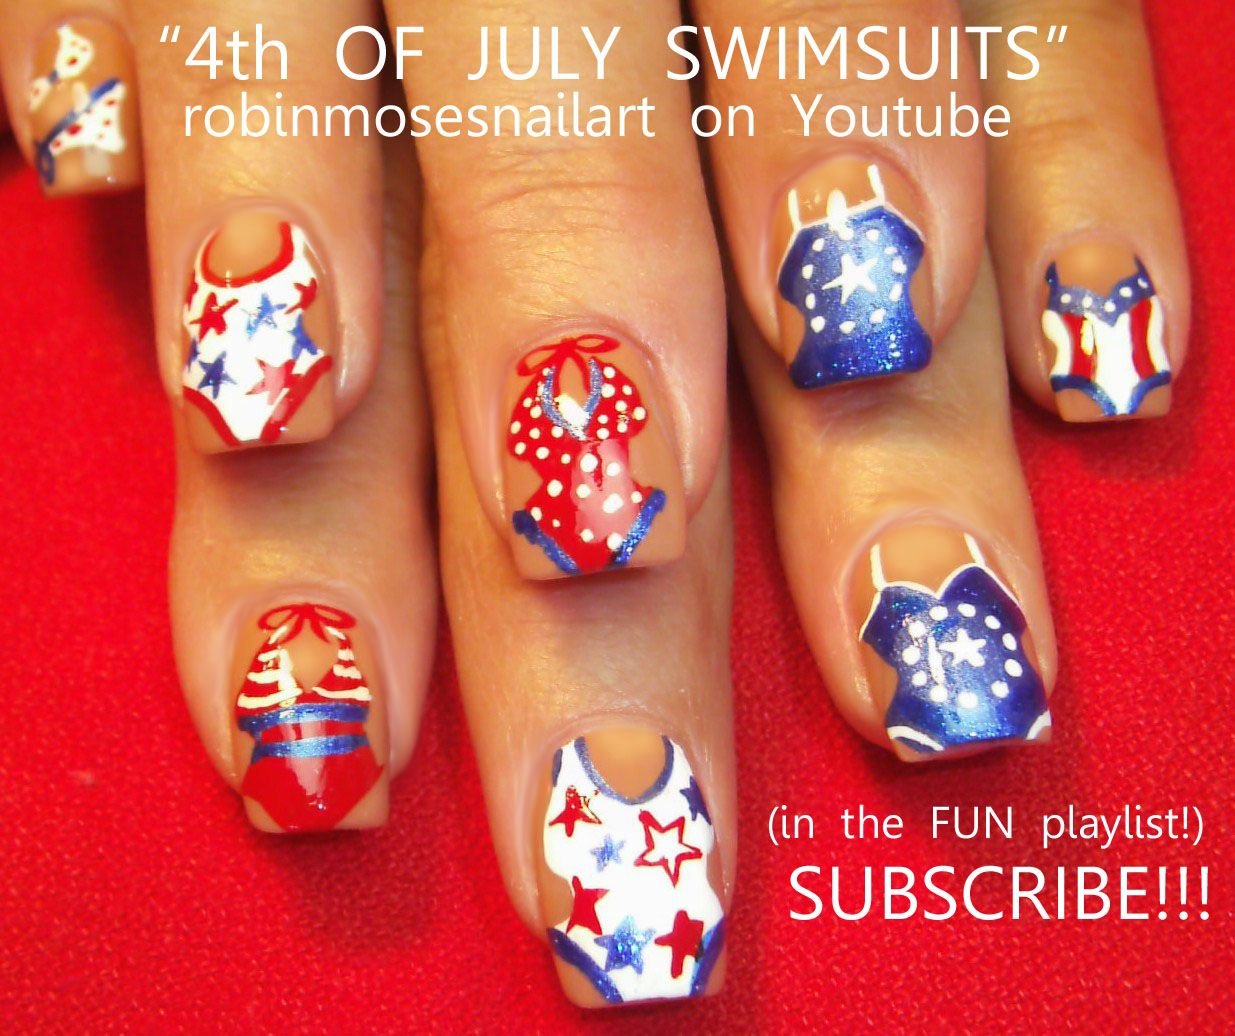 4th of july bathing suits 2015